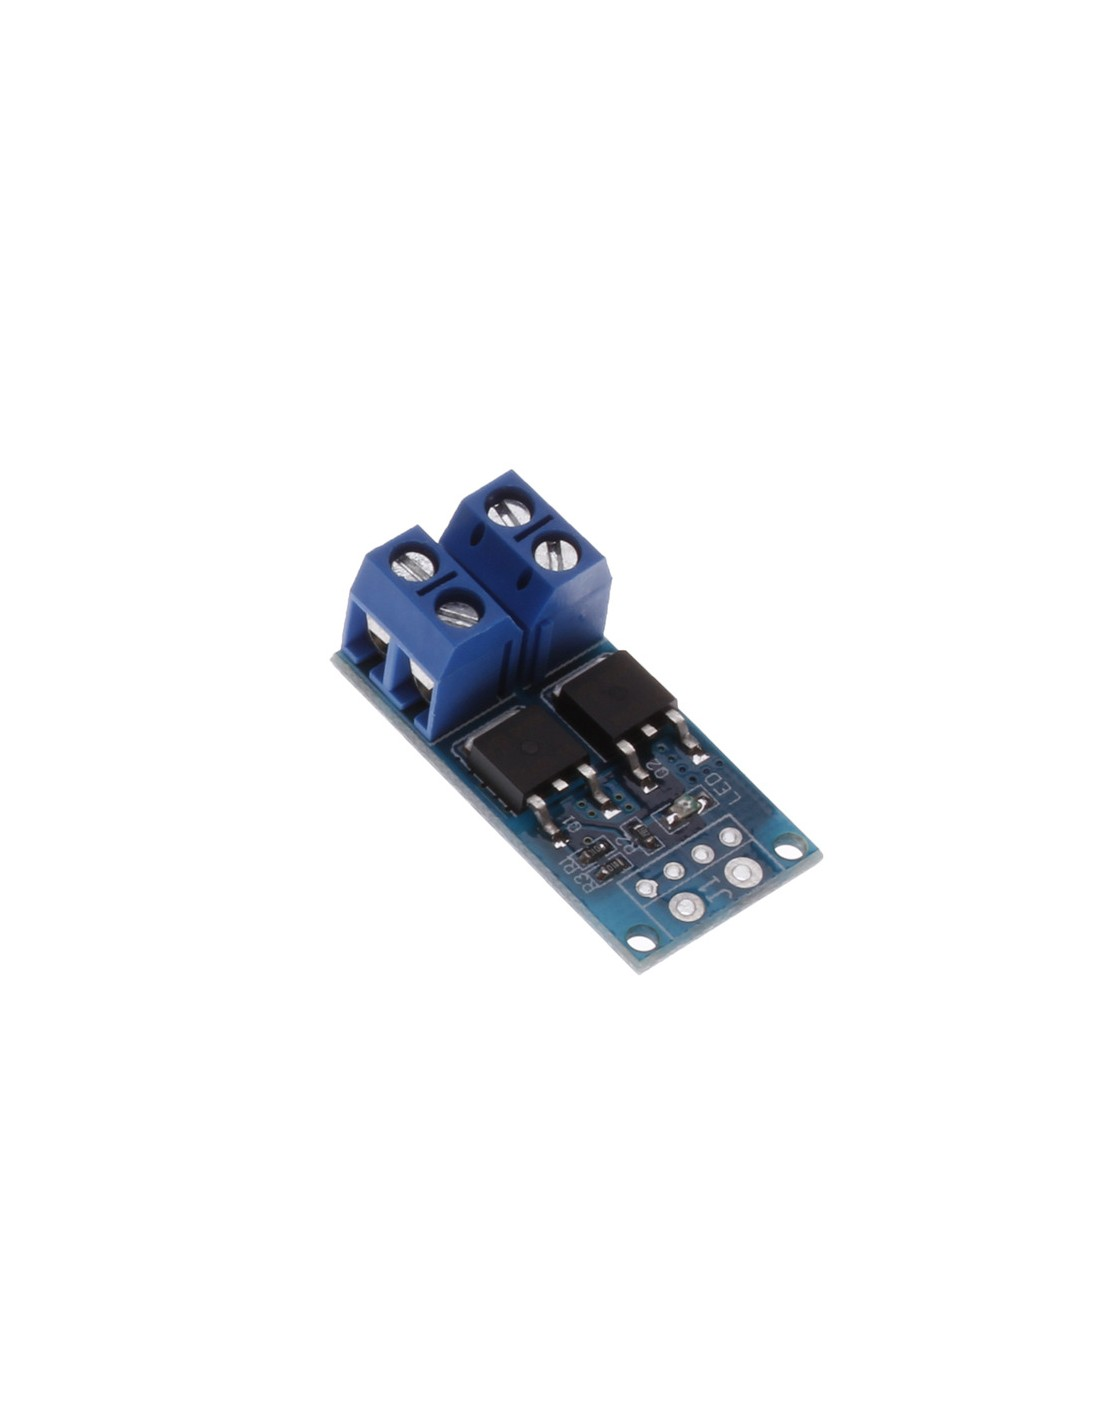 High Power Mosfet Drive Module Pwm Control Bridge Motor With Mosfets Tap To Zoom